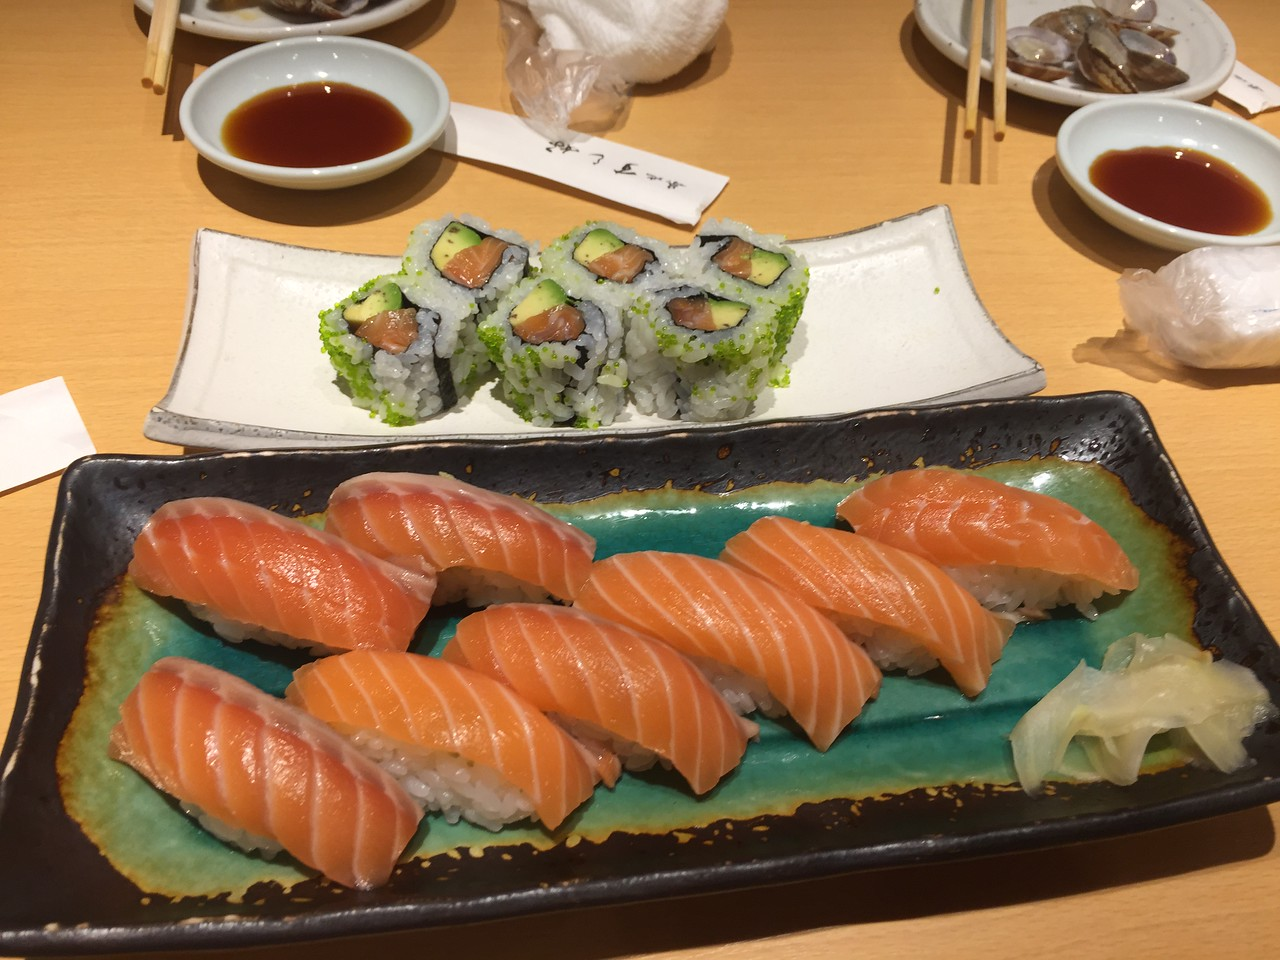 Sushi at a restaurant in Tsukji Market